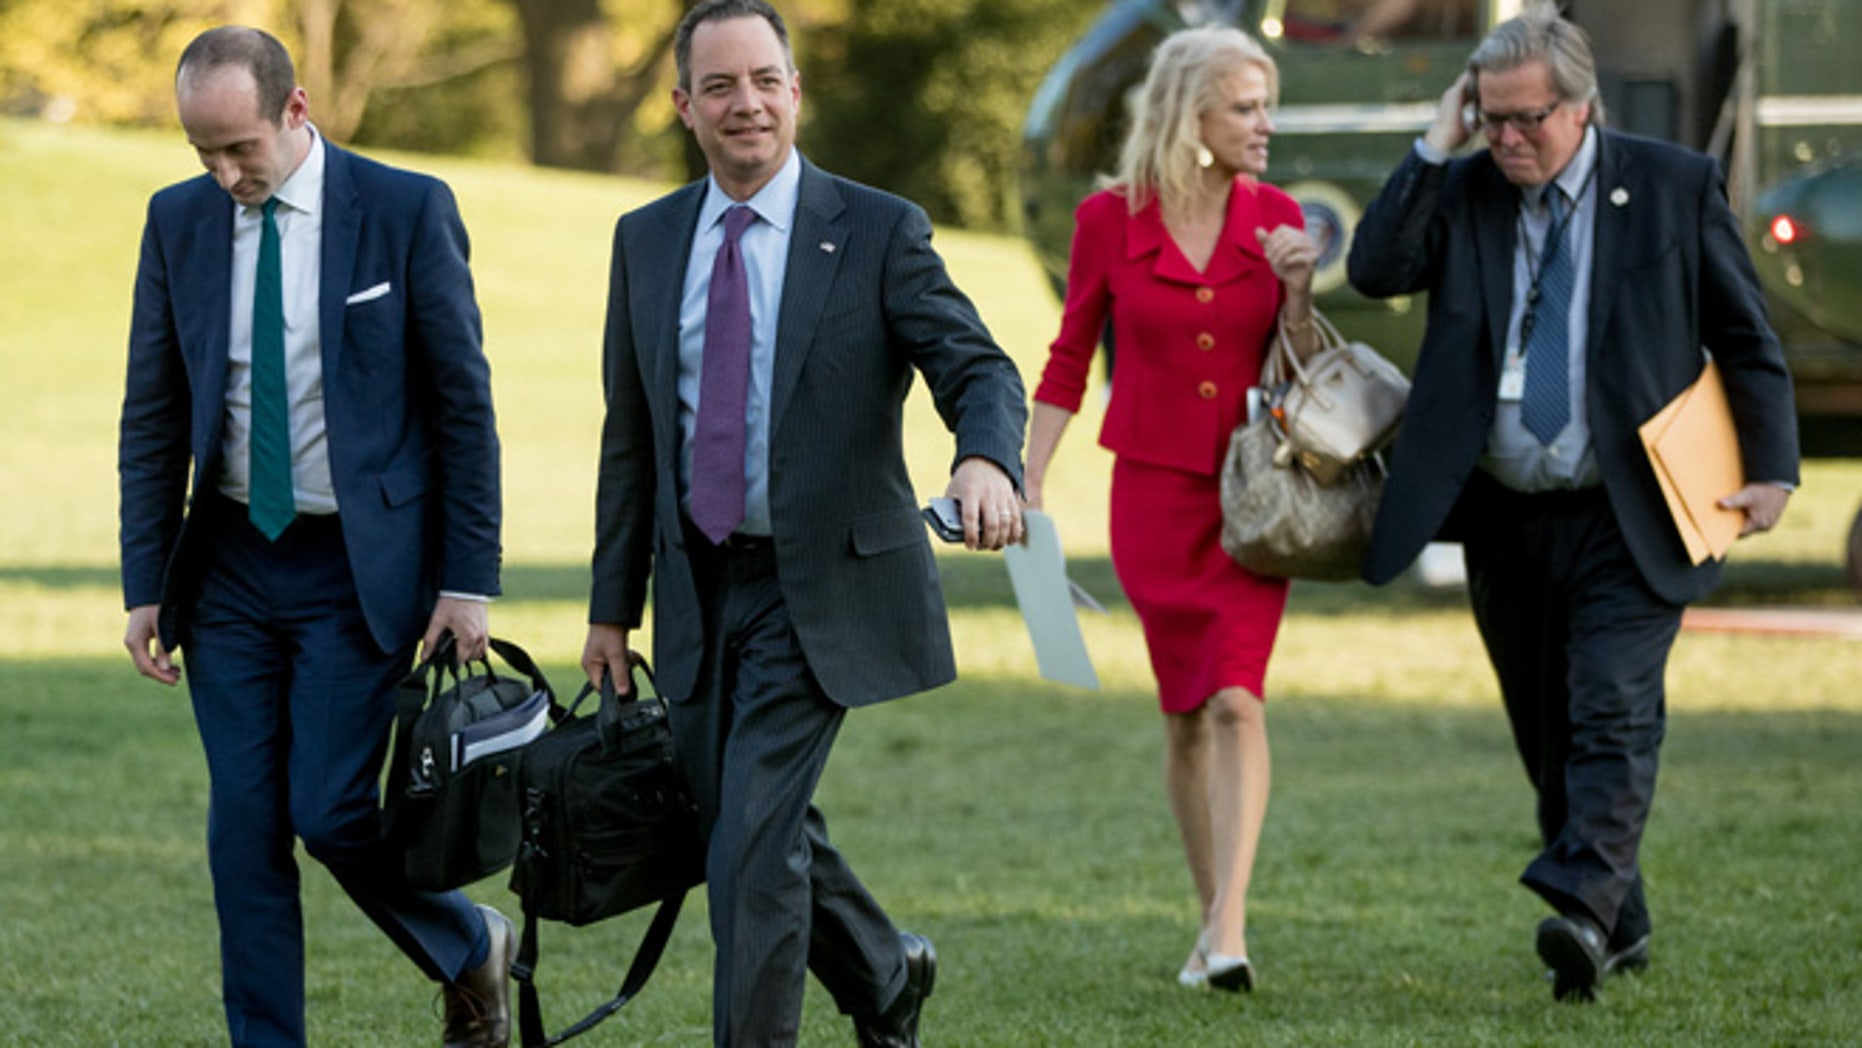 From left, President Donald Trump's White House Senior Adviser Stephen Miller, President Donald Trump's Chief of Staff Reince Priebus, Counselor to the President Kellyanne Conway, and President Donald Trump's White House Senior Adviser Steve Bannon, walk across the South Lawn after President Donald Trump arrives at the White House in Washington, Tuesday, April 18, 2017, after a short trip from Andrews Air Force Base, Md., after speaking at Snap-On Tools in Kenosha, Wis. (AP Photo/Andrew Harnik)